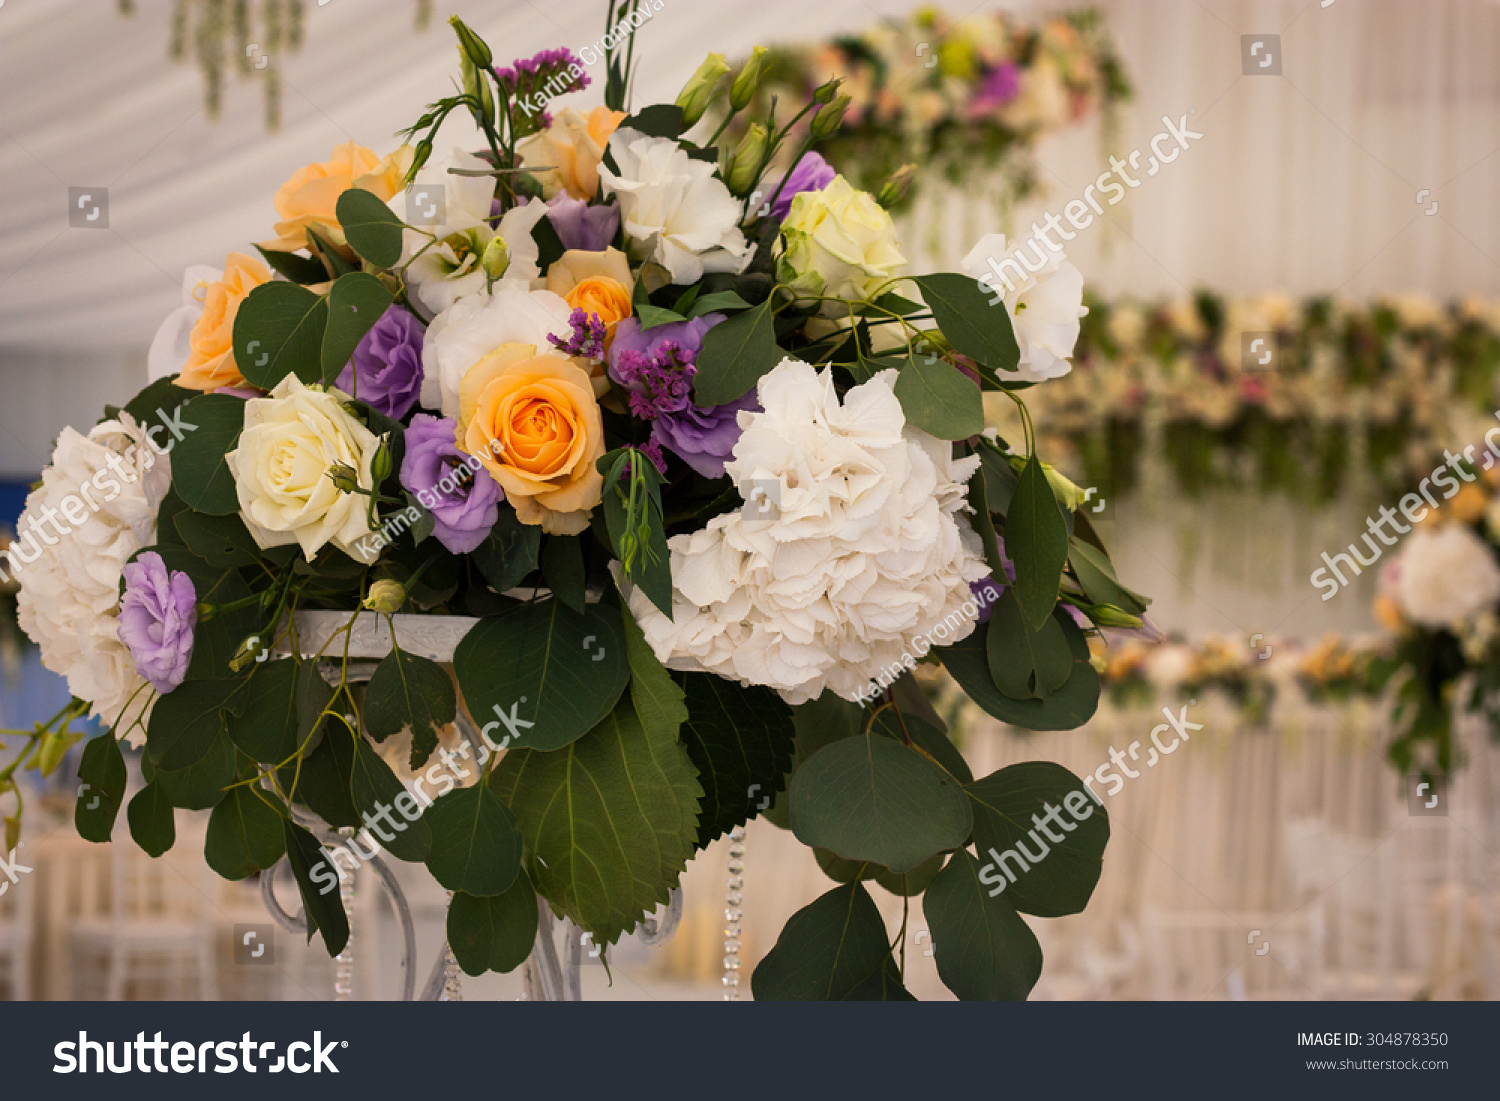 Flowers bouquet flowers banquet hall wedding stock photo edit now flowers bouquet of flowers in a banquet hall wedding izmirmasajfo